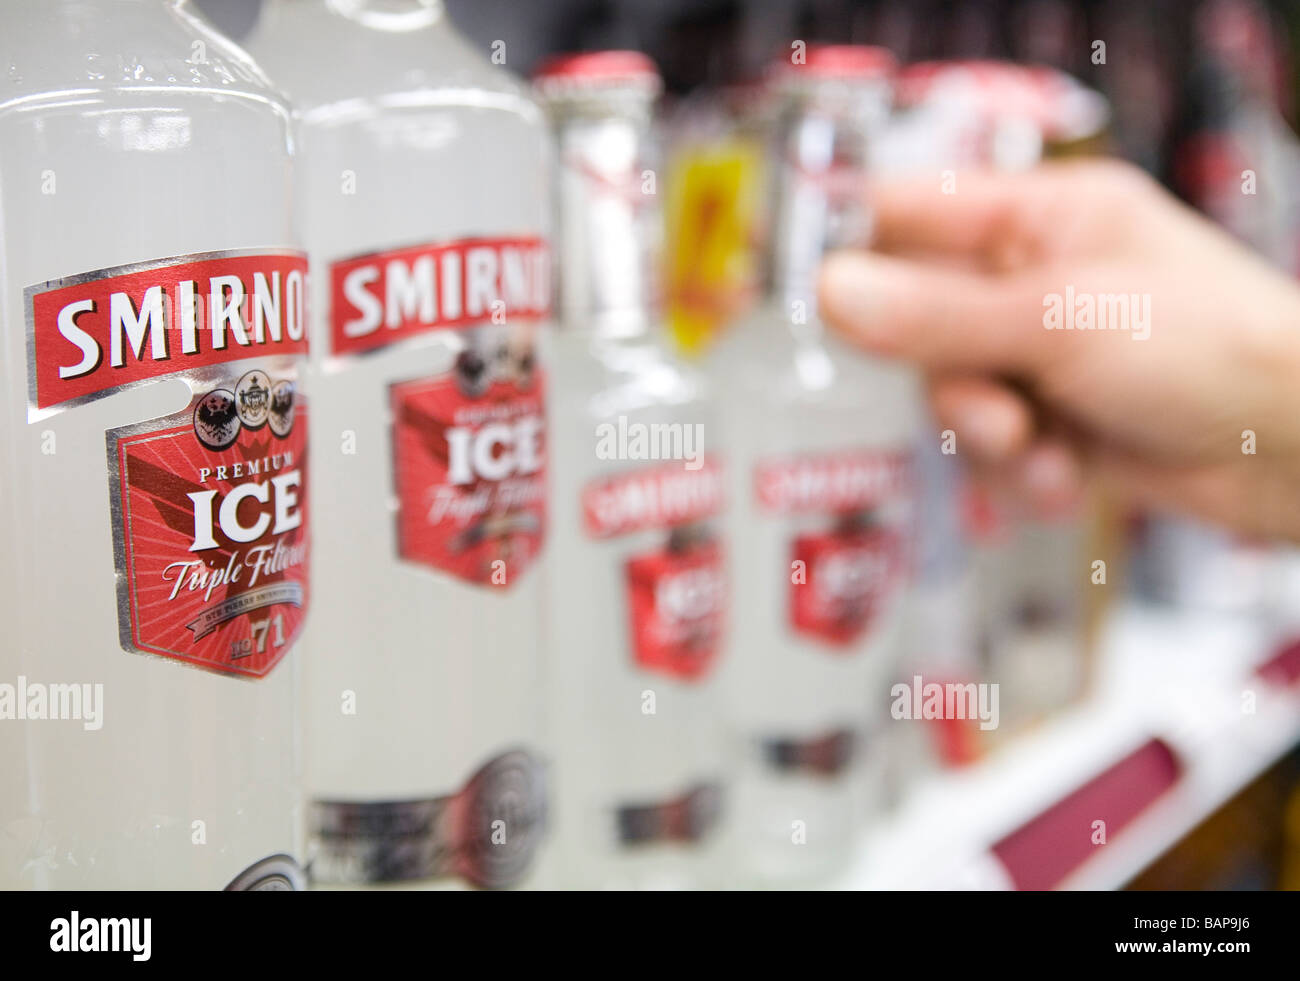 A customer takes a bottle of Smirnoff Ice from the shelf in an off license - Stock Image